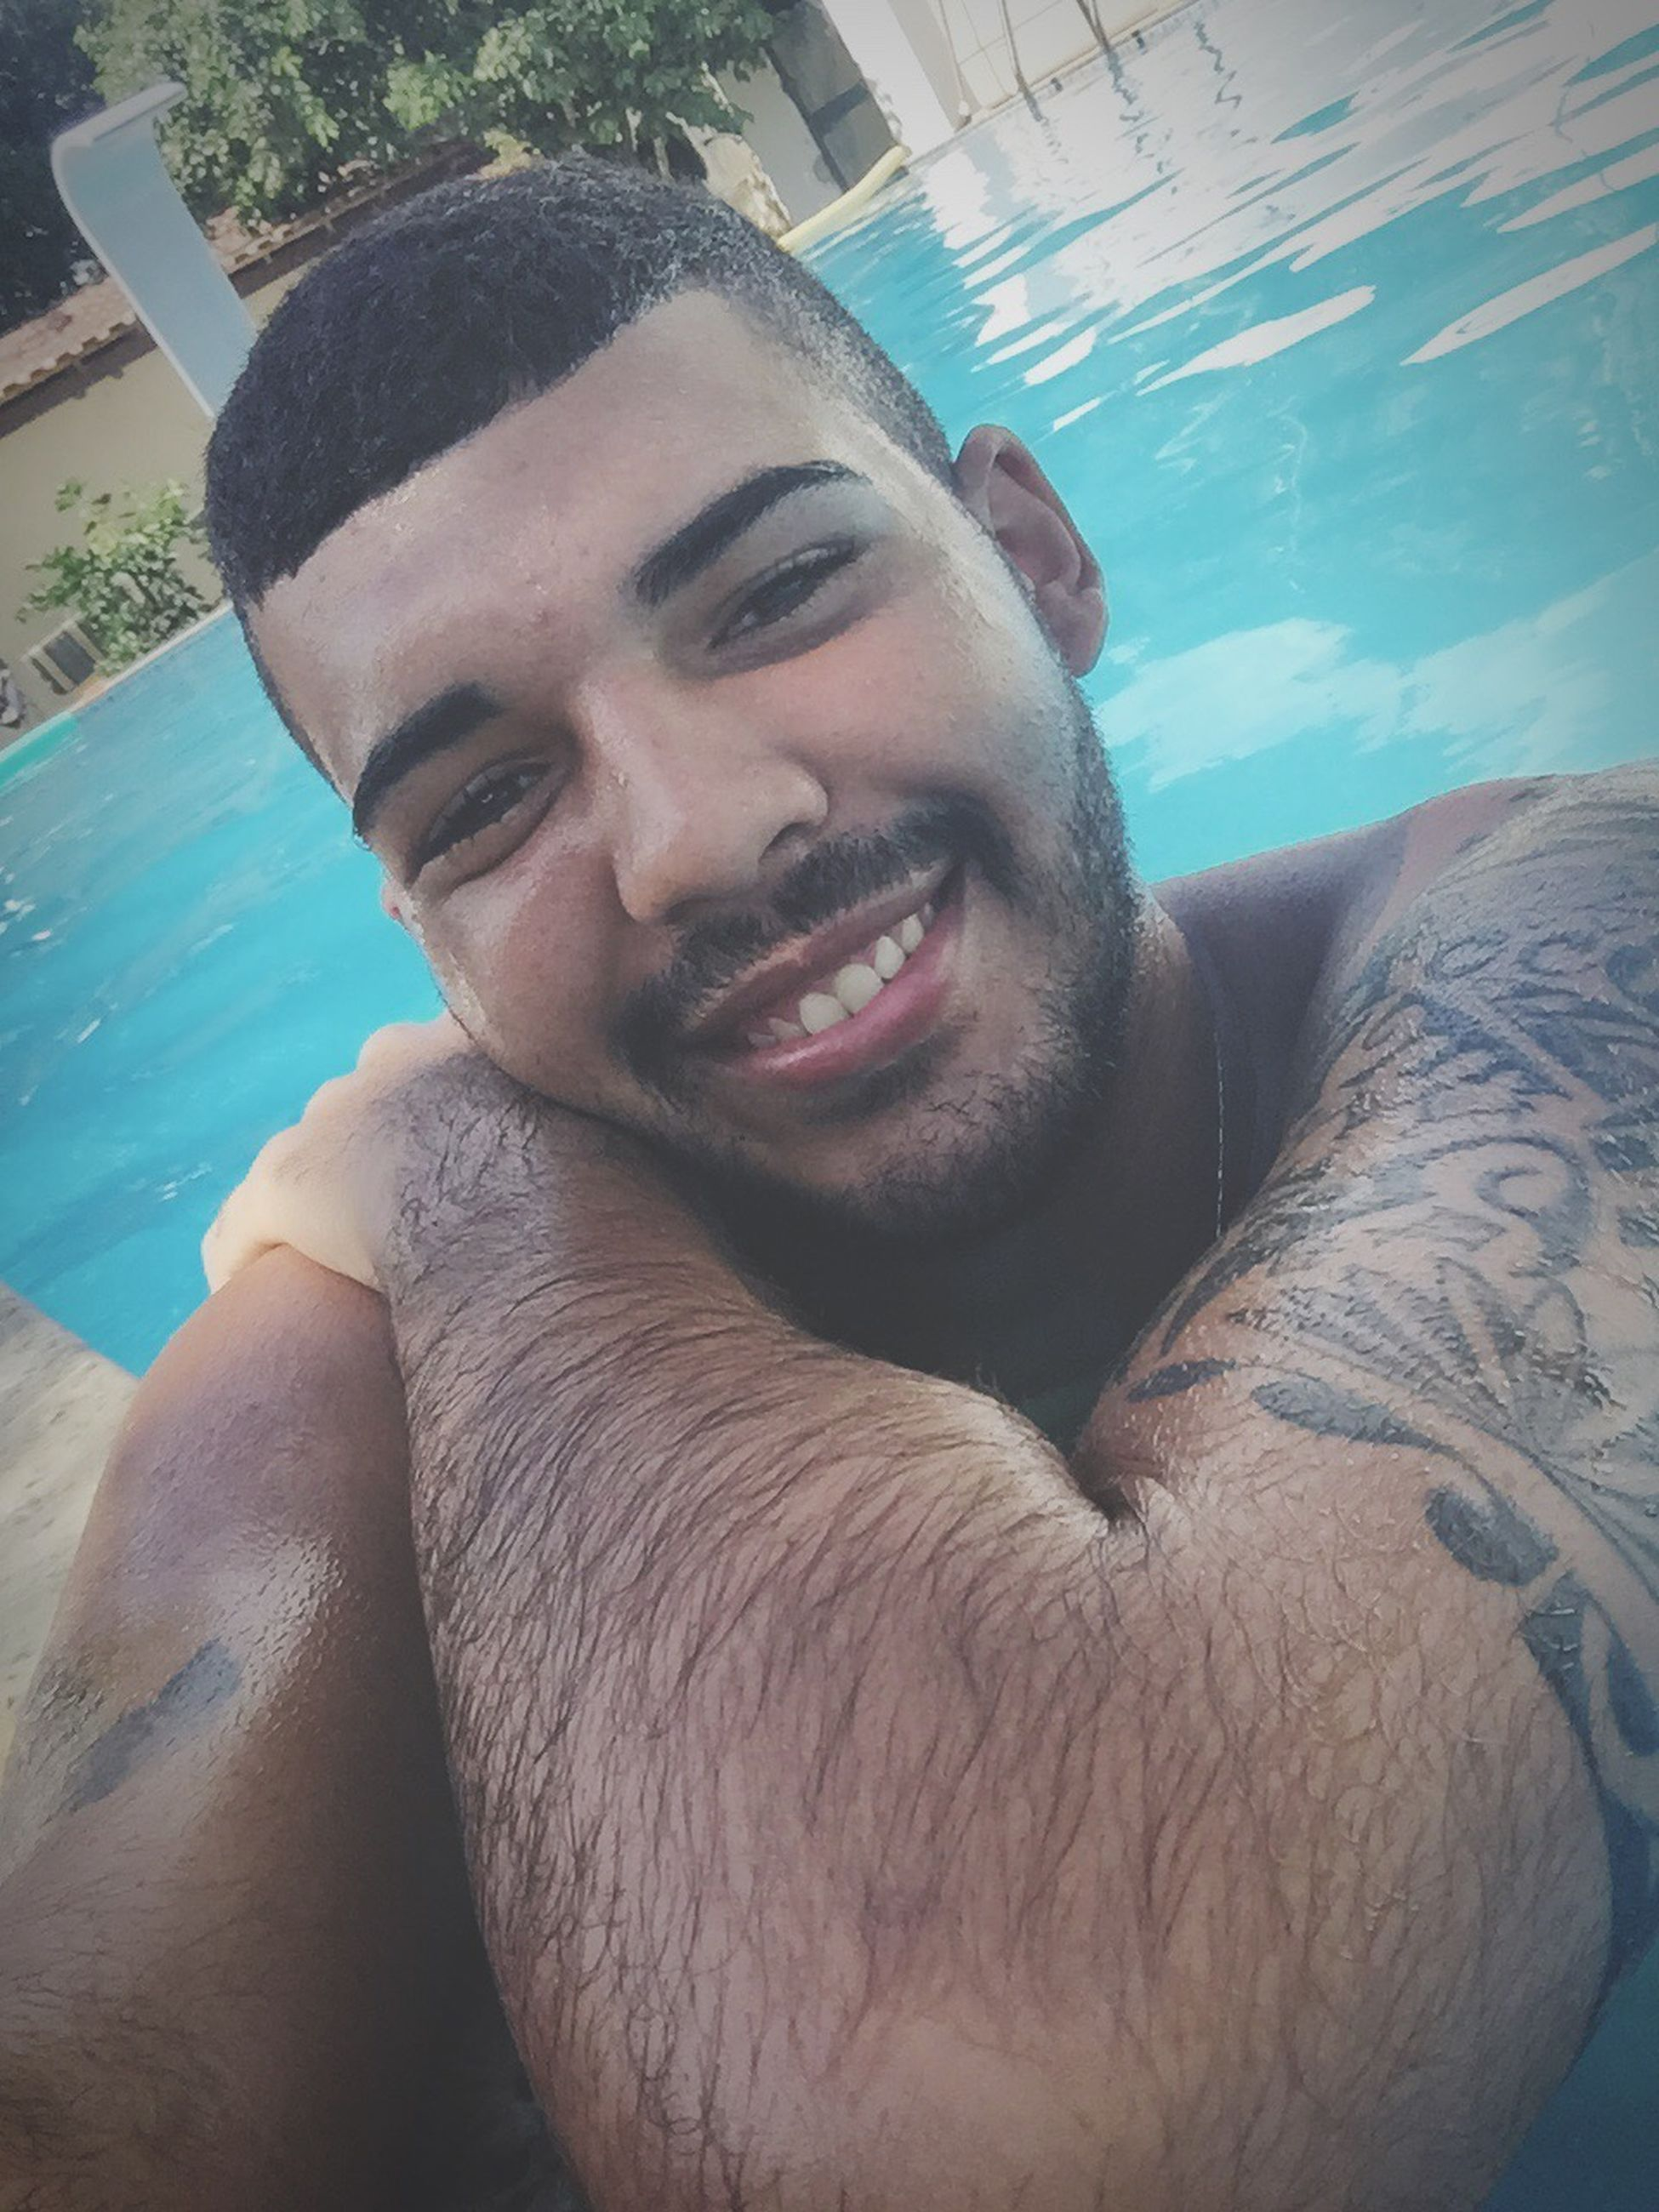 young adult, smiling, young men, males, lifestyles, cheerful, beard, swimming pool, portrait, one person, men, happiness, real people, water, adults only, outdoors, day, people, only men, one man only, close-up, adult